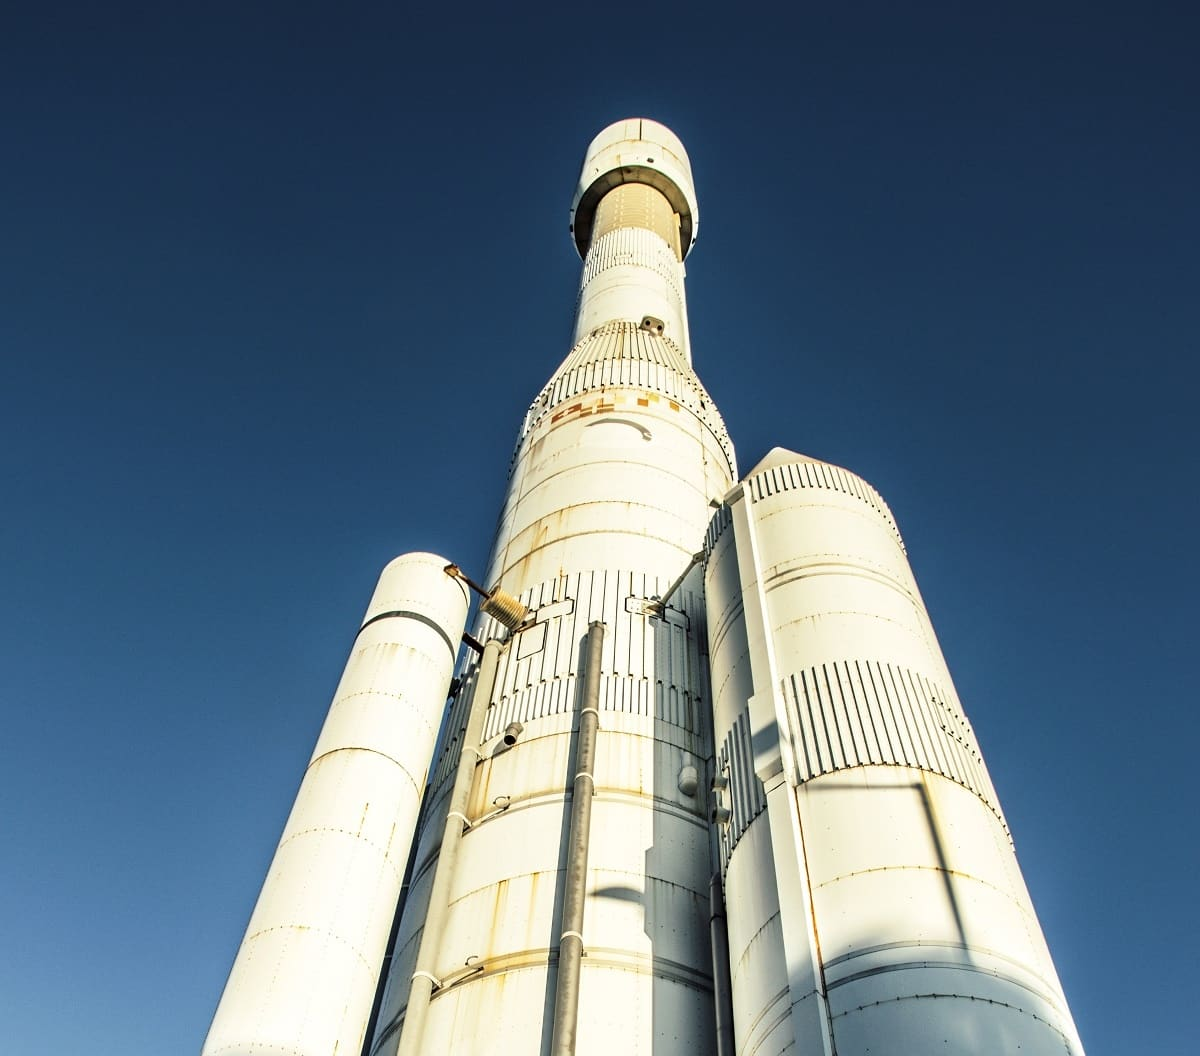 picture of space x rocket